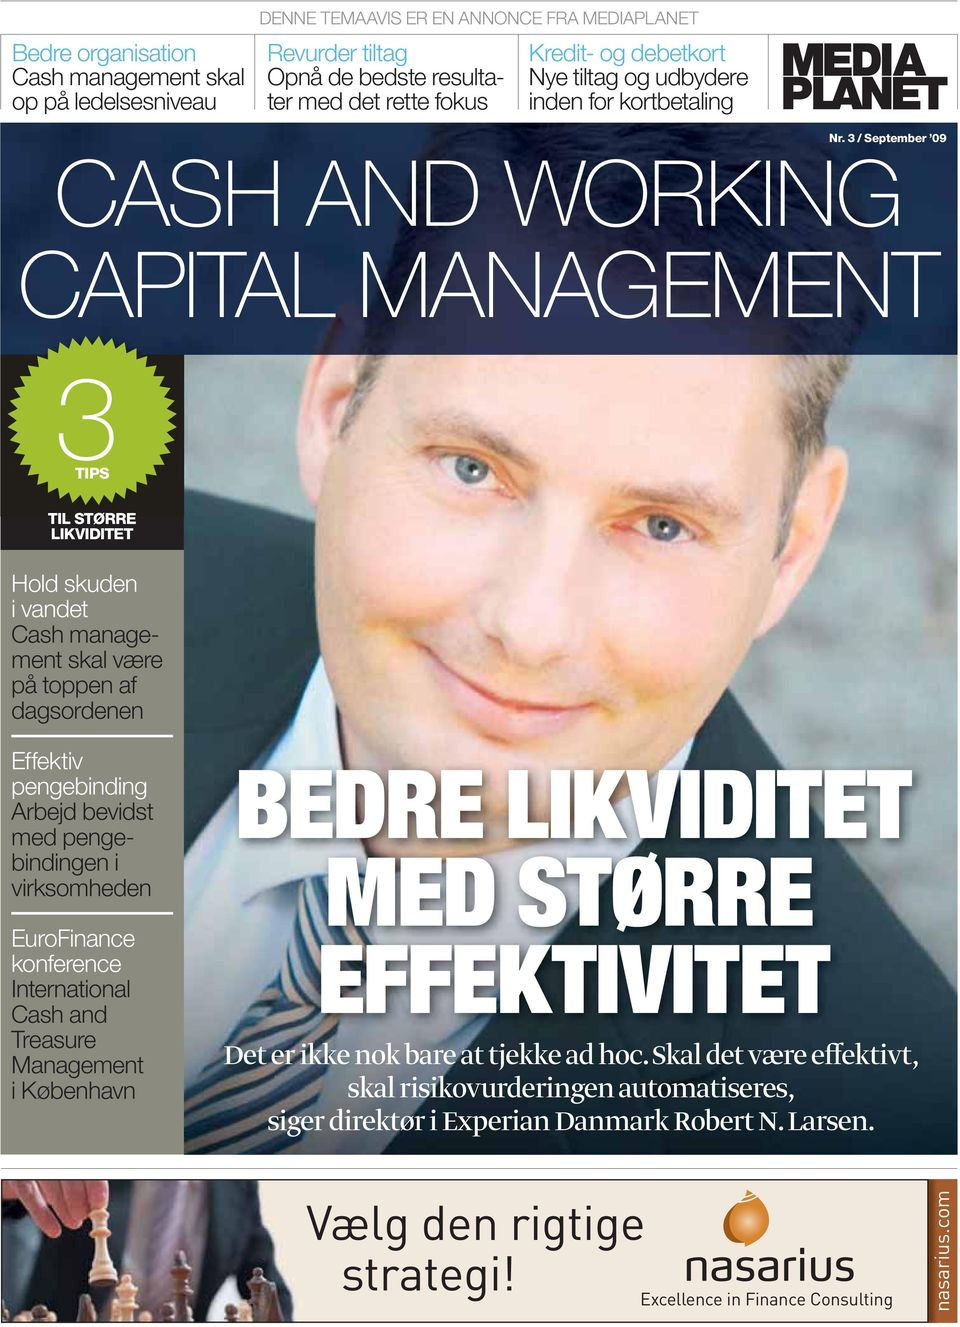 3 / September 09 CASH AND WORKING CAPITAL MANAGEMENT 3TIPS TIL STØRRE LIKVIDITET Hold skuden i vandet Cash management skal være på toppen af dagsordenen Effektiv pengebinding Arbejd bevidst med